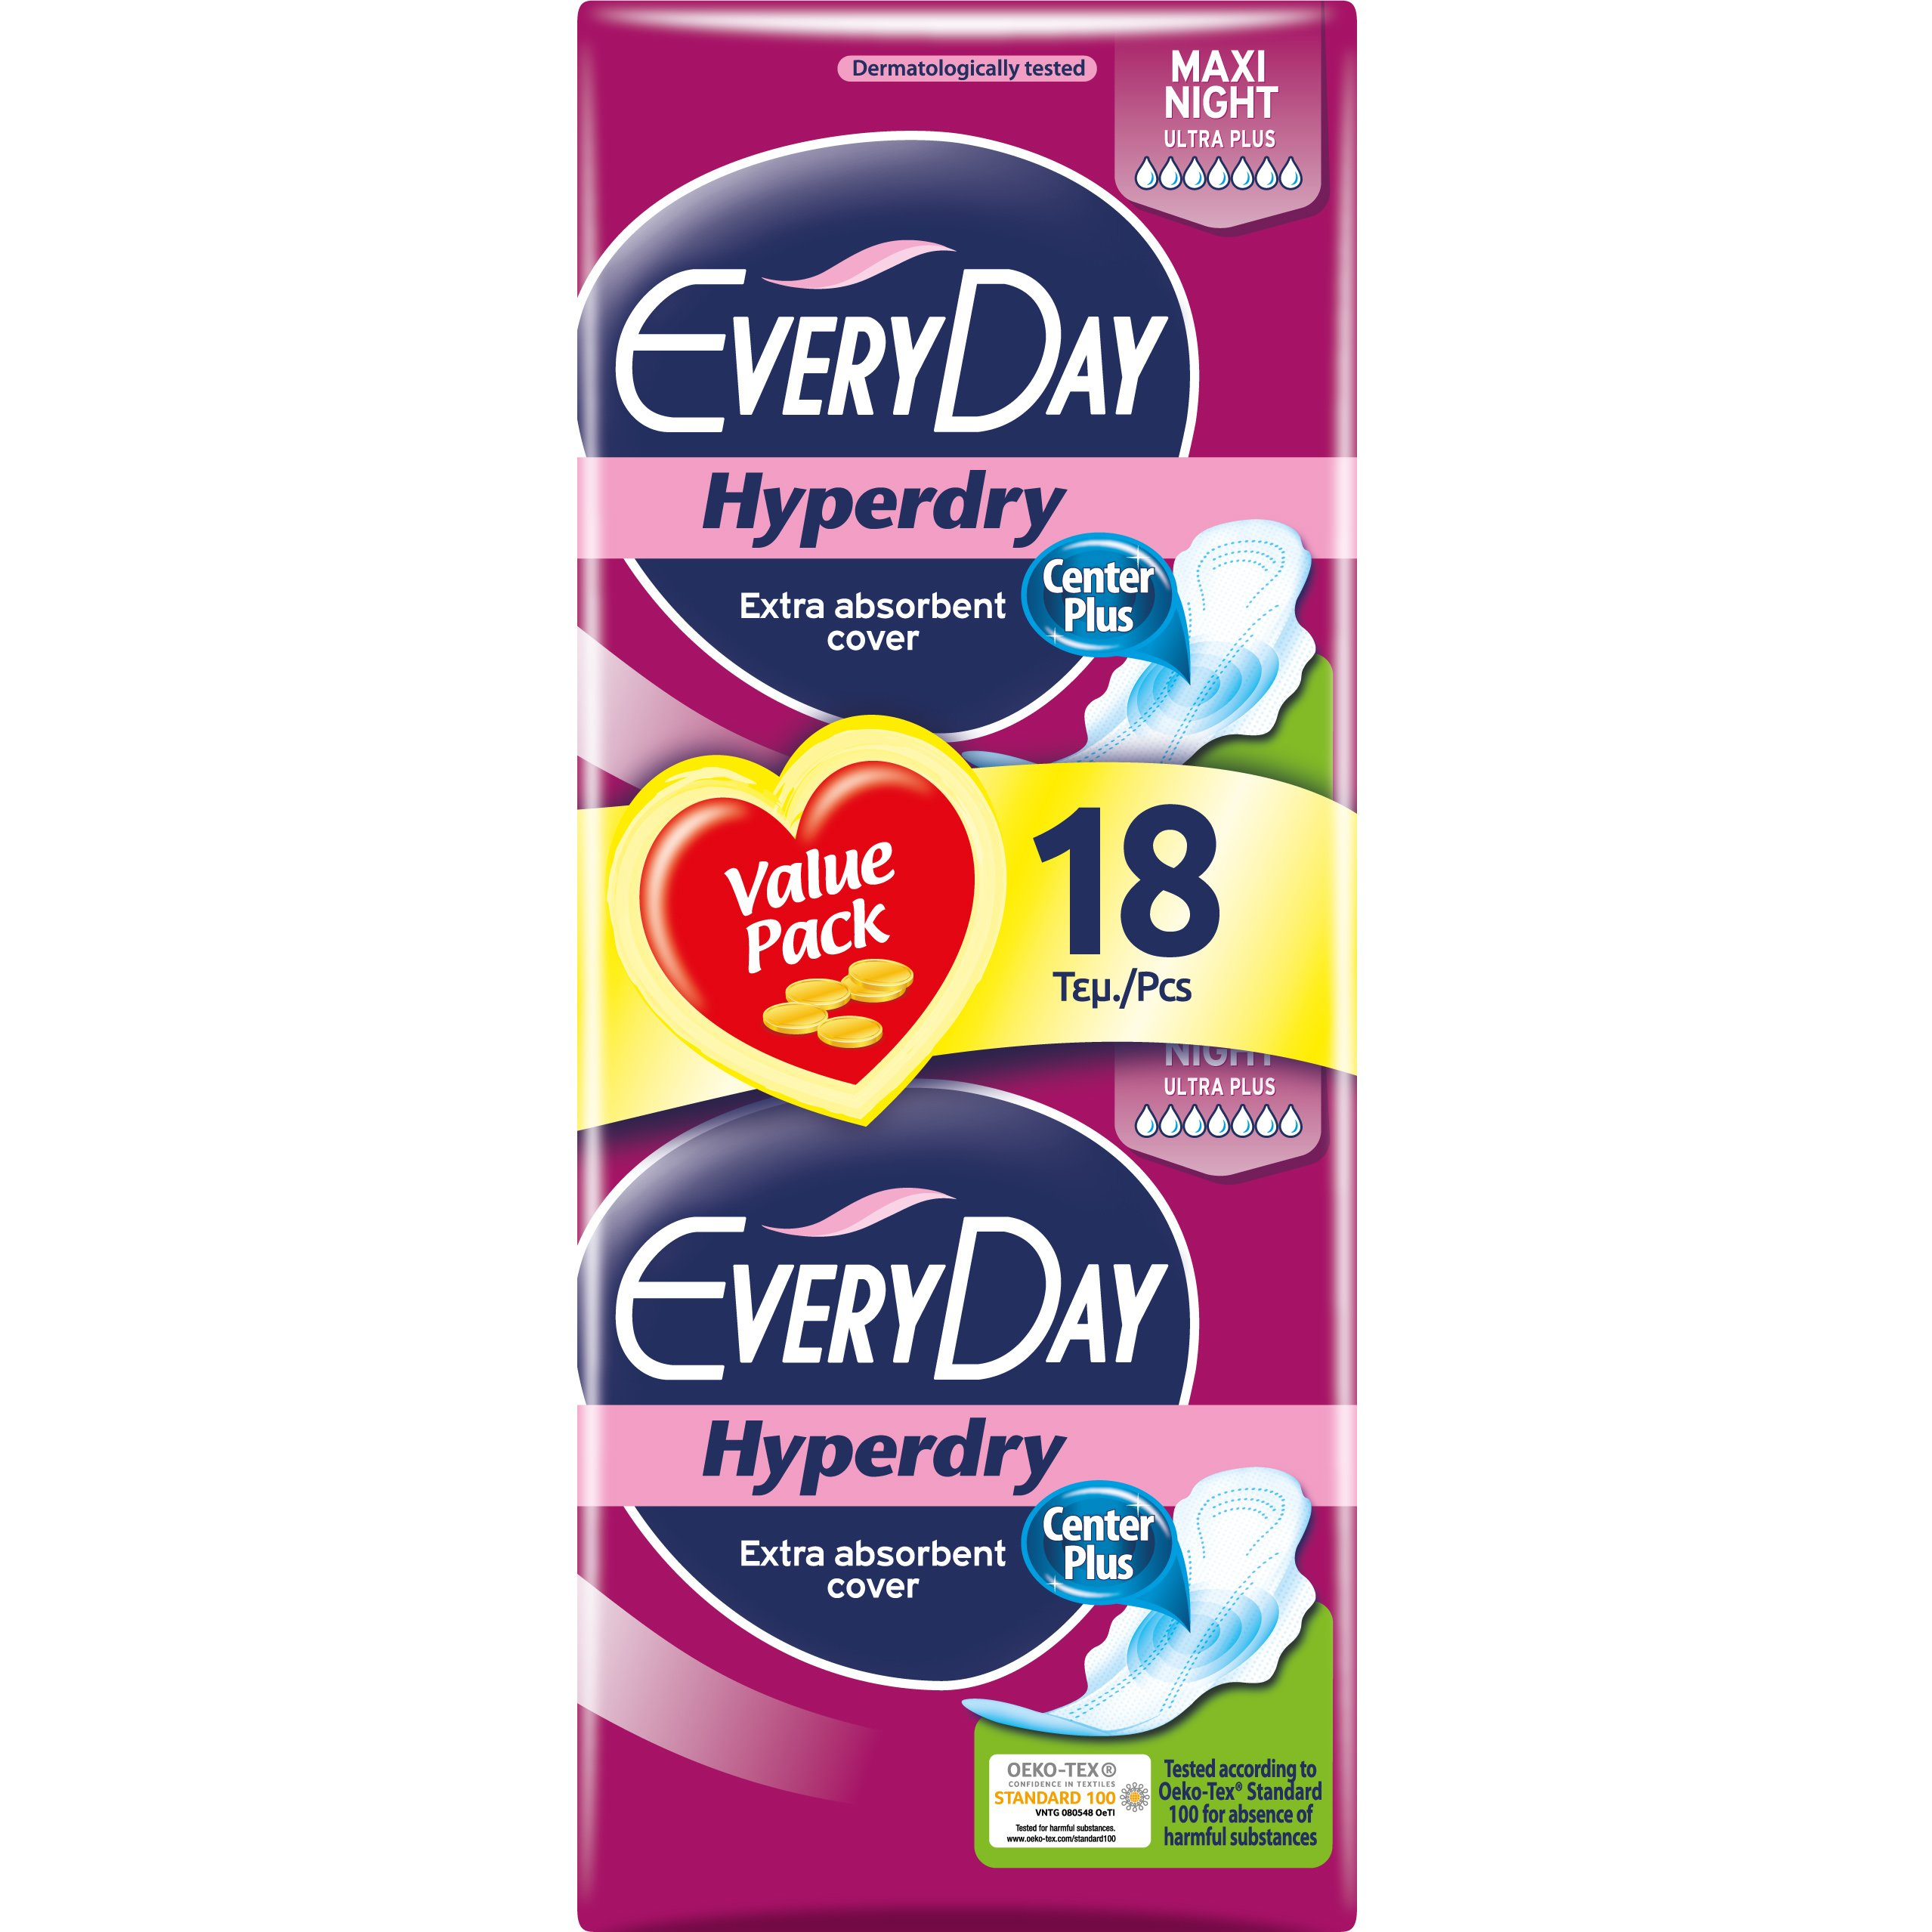 Every Day Hyperdry Maxi Night Value Pack Πολύ Λεπτές Σερβιέτες Έξτρα Απορροφητικές, Ιδανικές για τη Νύχτα 18 Τεμάχια